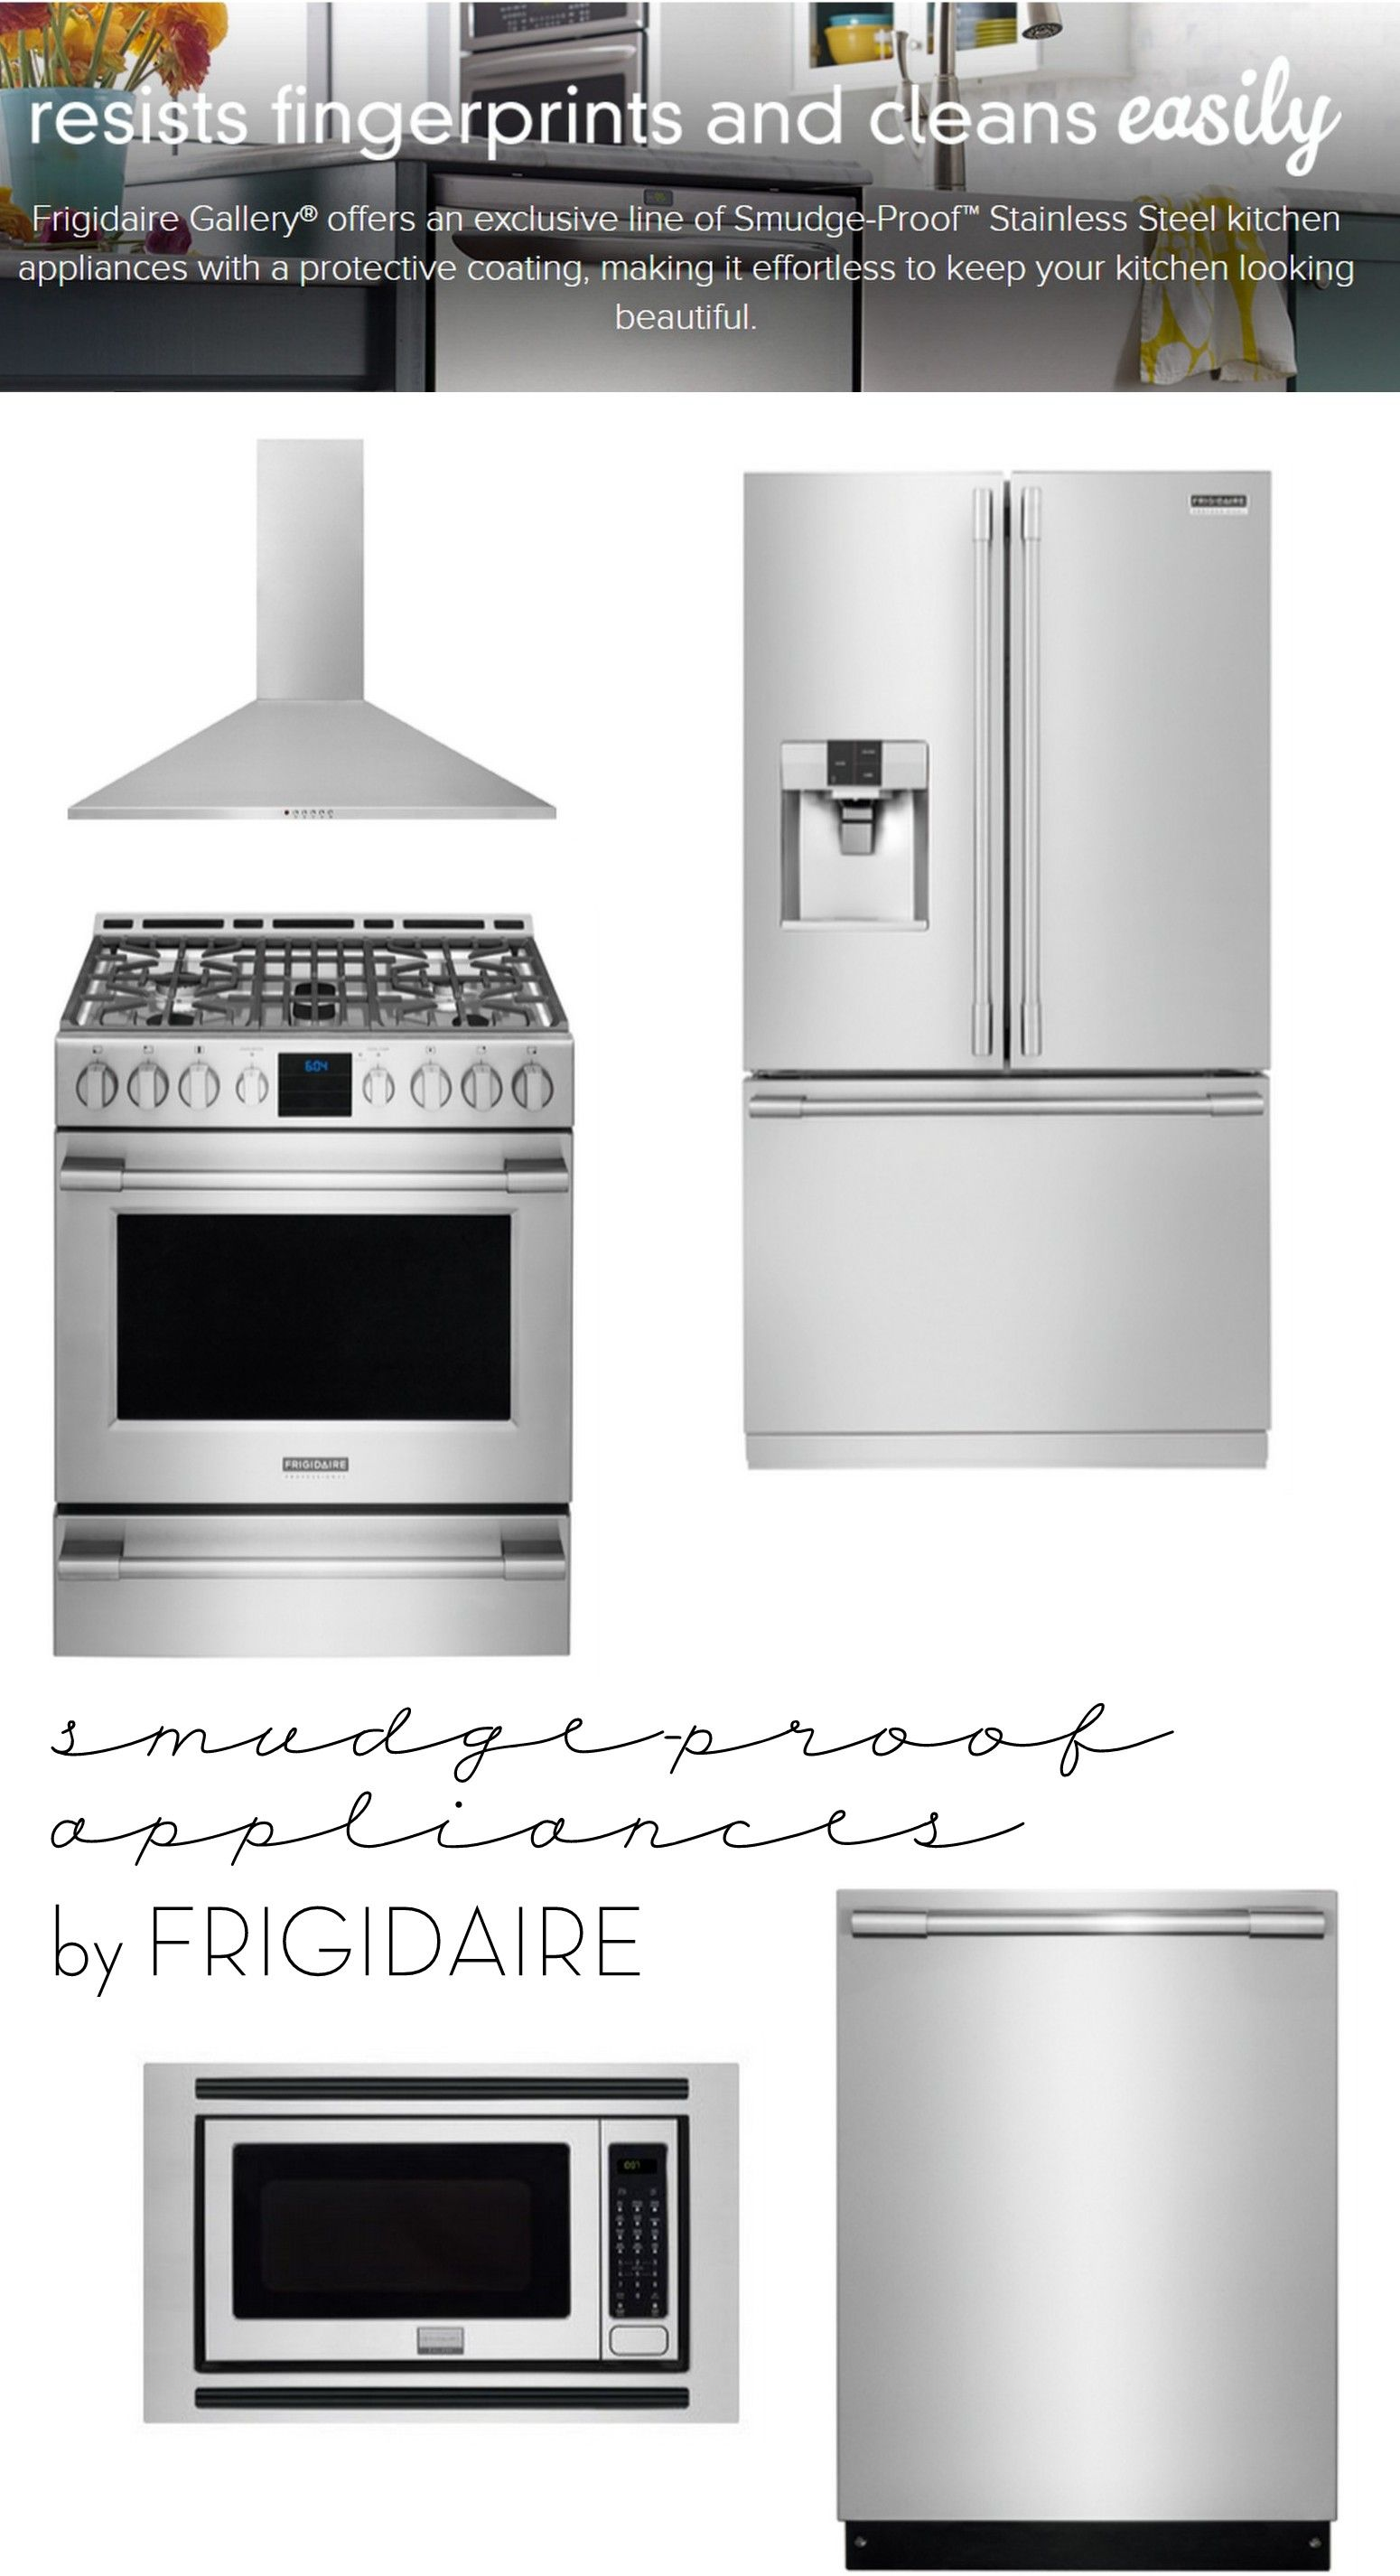 Resist Fingerprints On Your Liances With Smudge Proof Stainless Steel By Frigidaire